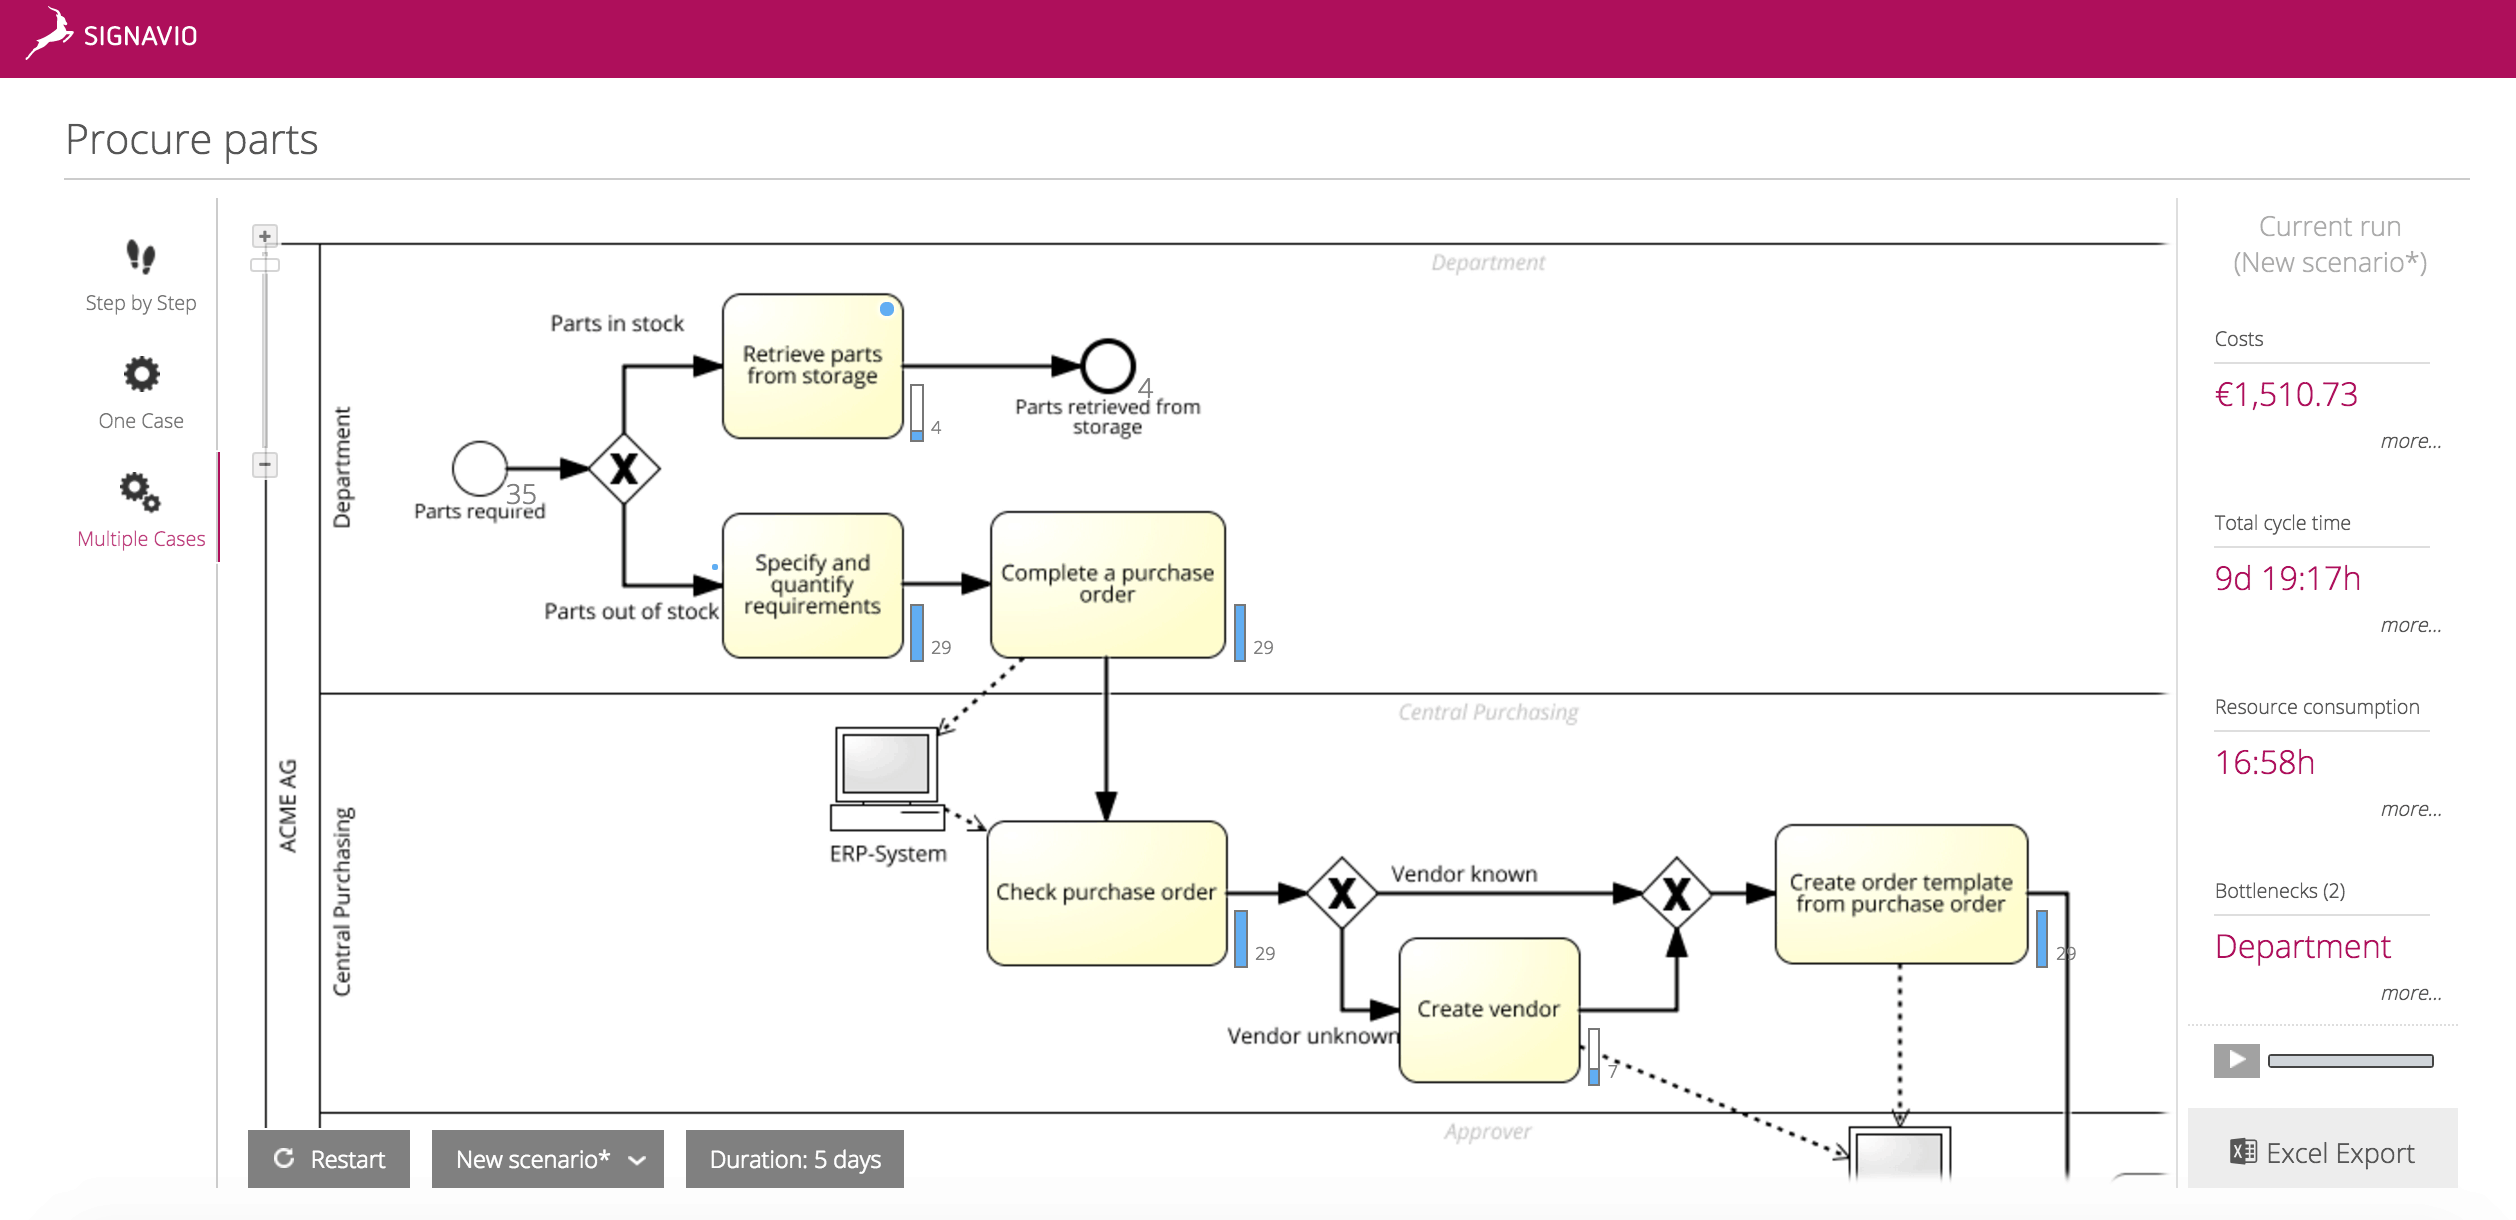 BPM Simulation Dashboard Screenshot after redesign